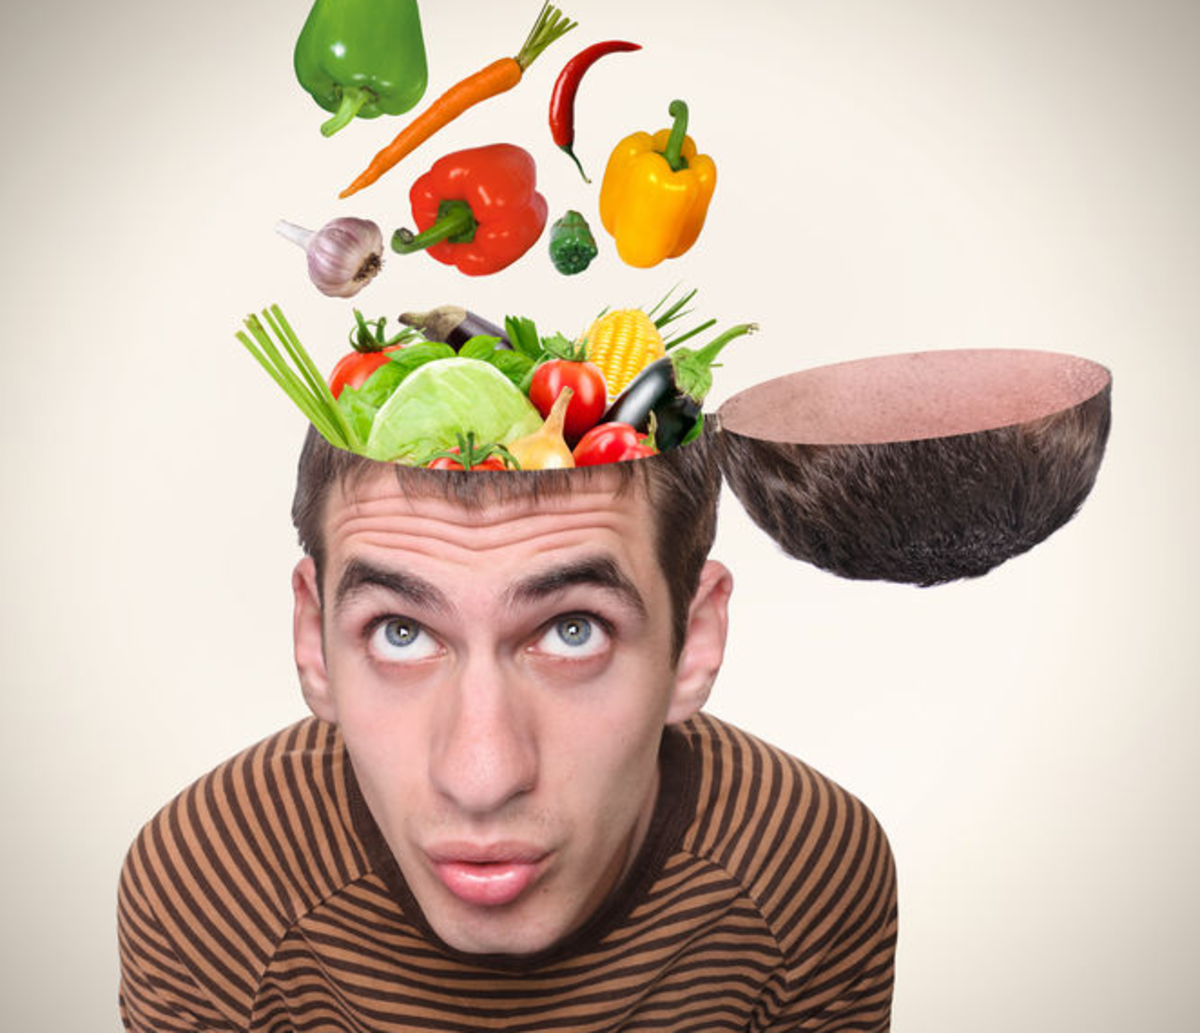 Why Do Most Vegetarians Go Back to Eating Meat? | Psychology Today